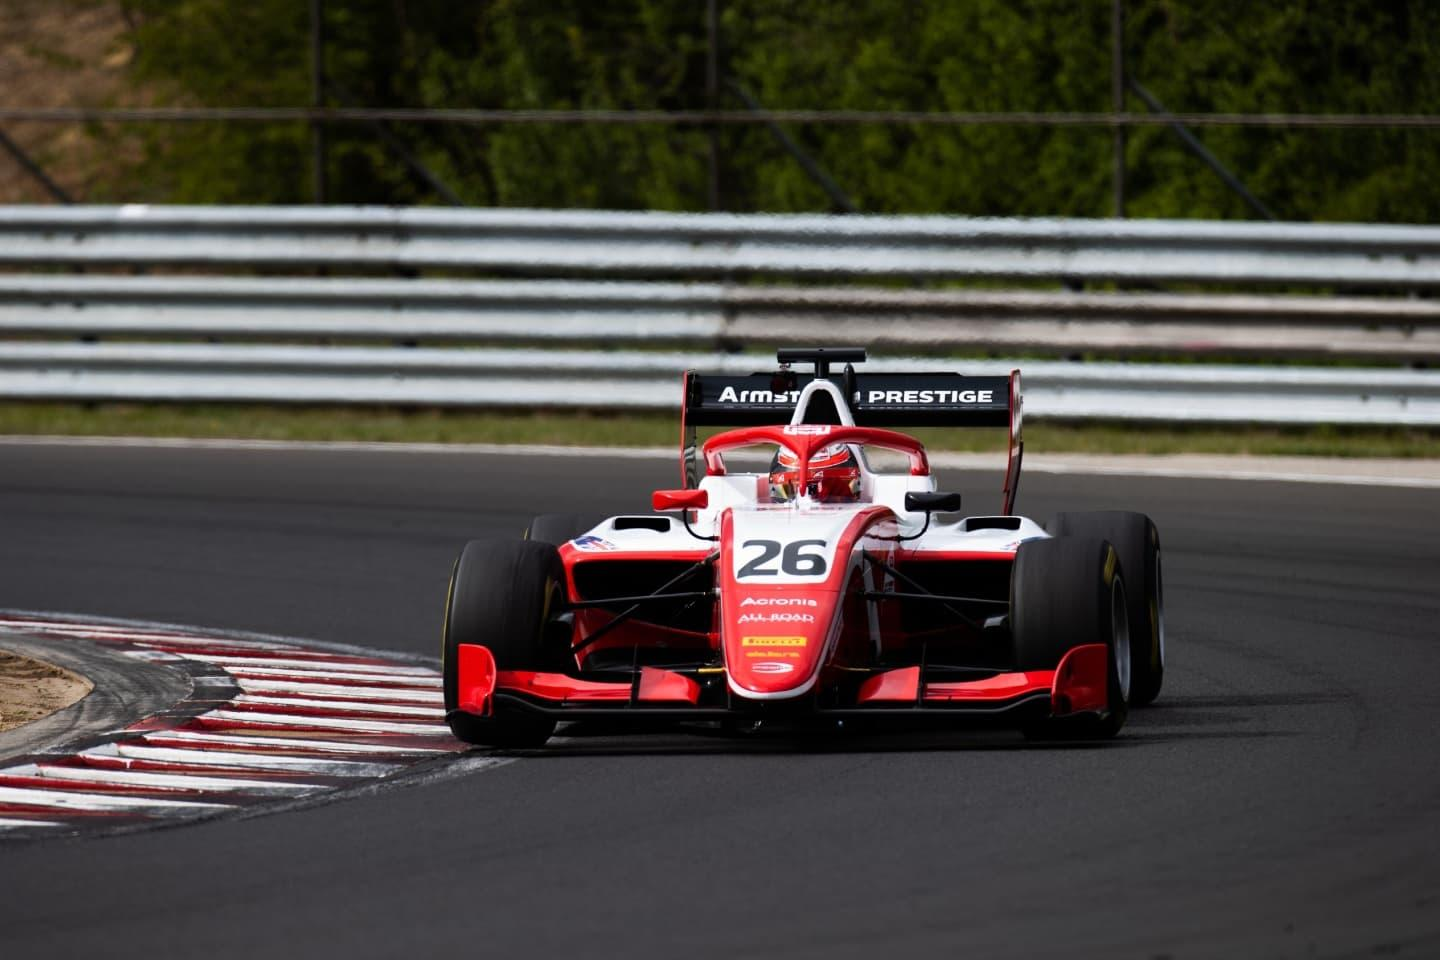 marcusarmstrongtestf3hungaroring2019d1